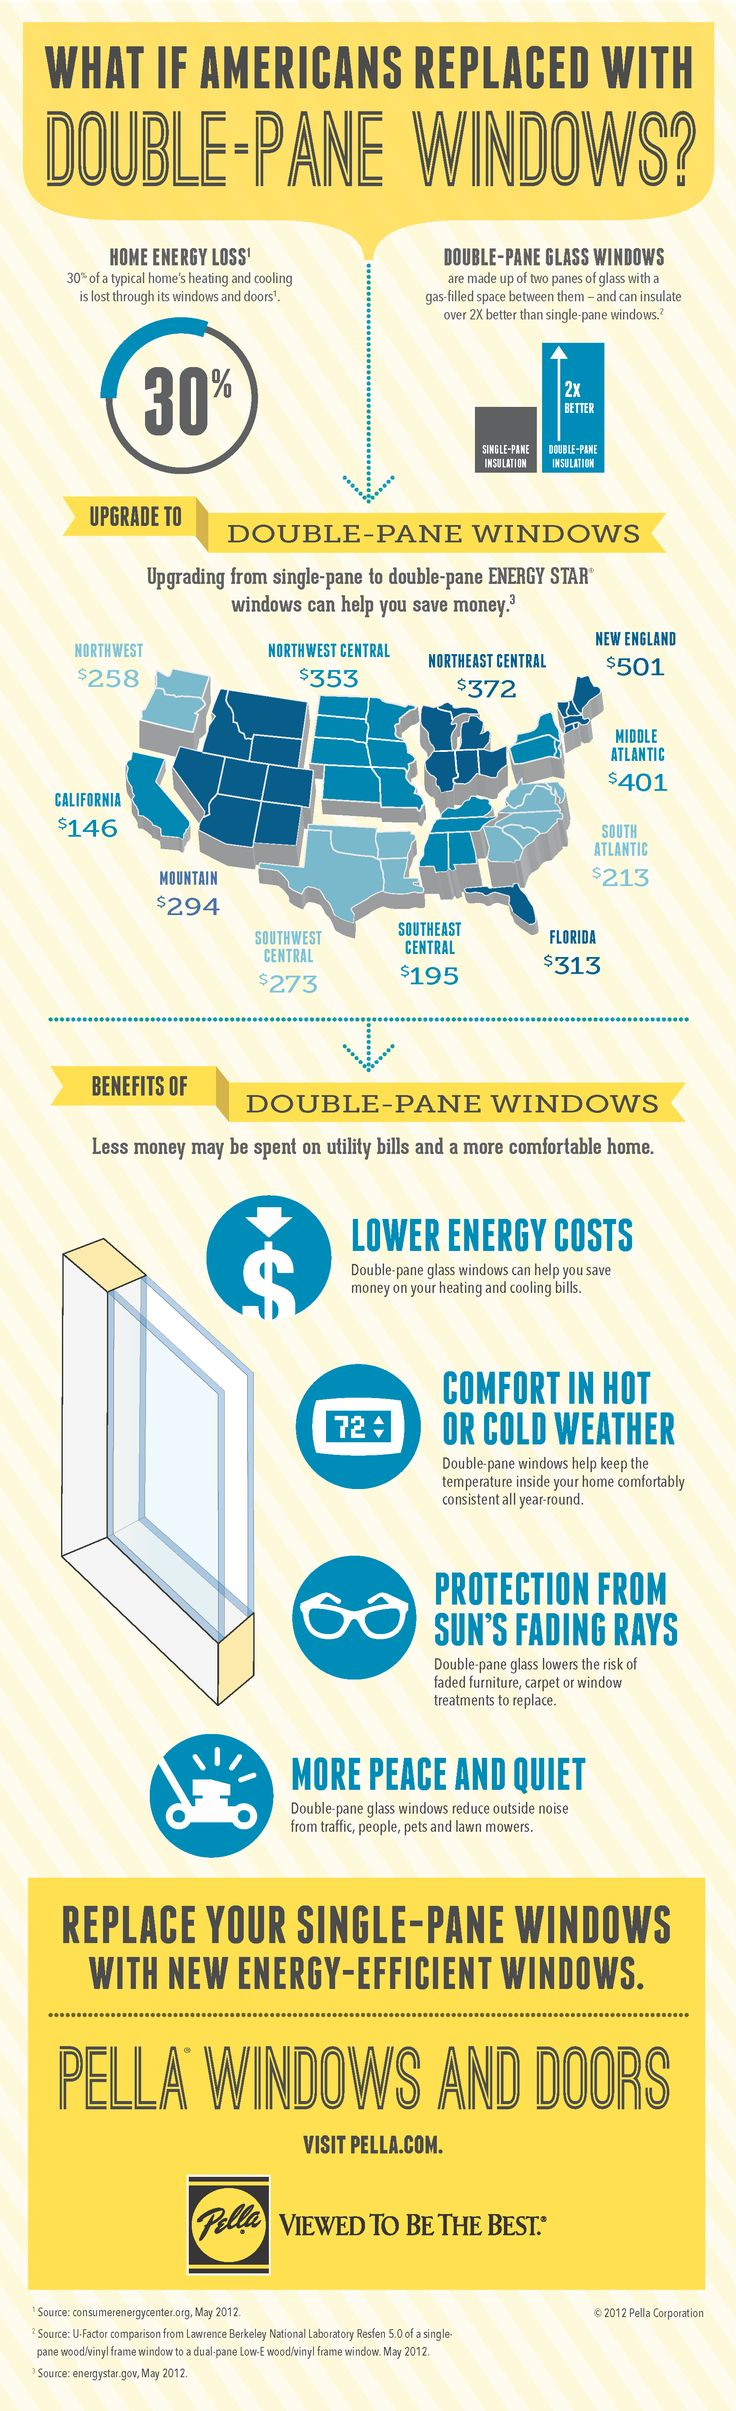 What if Americans replaced with double-pane windows? Upgrading from single-pane to double-pane ENERGY STAR windows can help save you money.